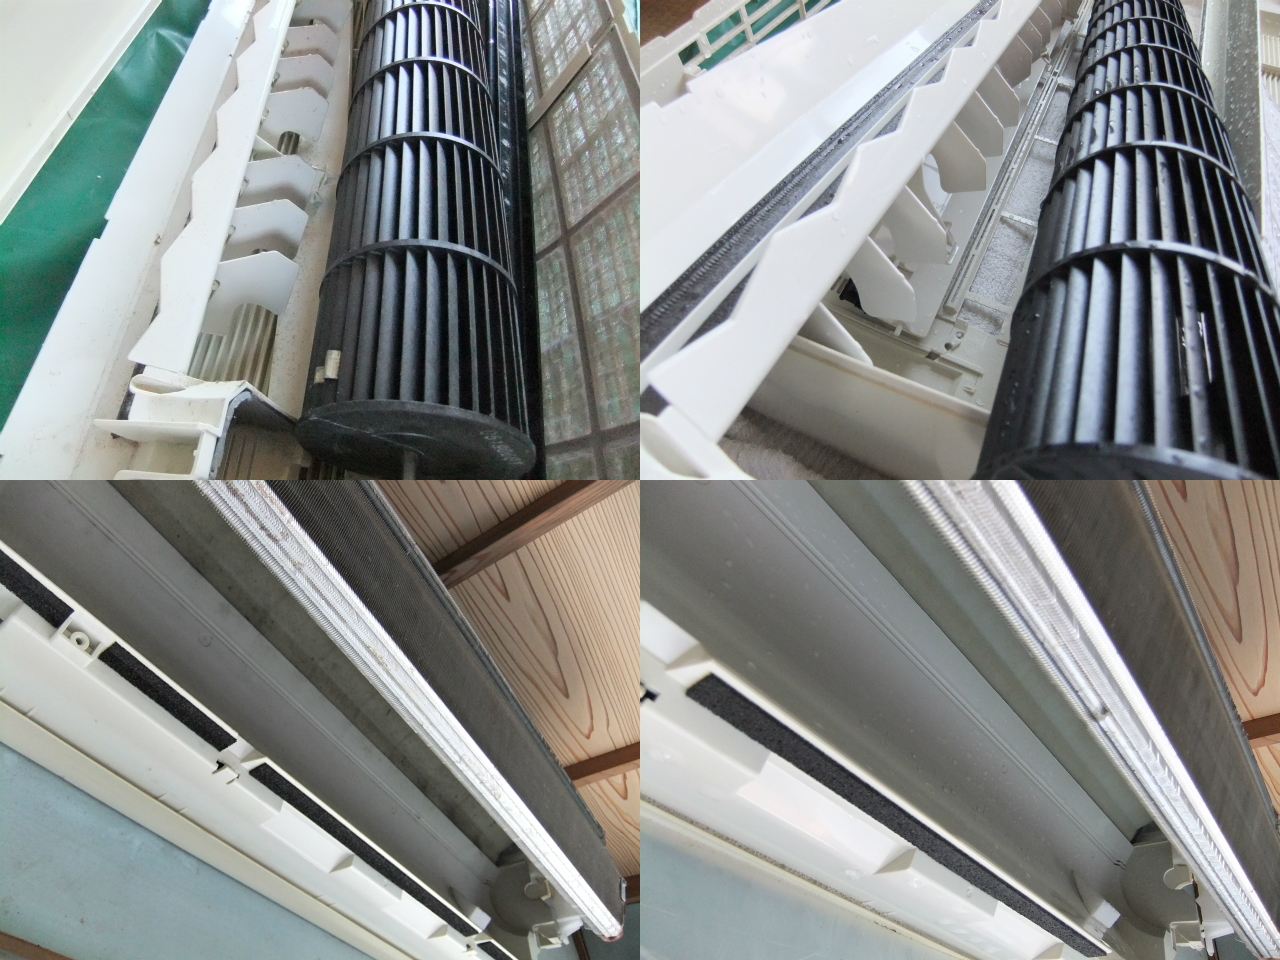 http://ajras.net/images/120808-aircon1.jpg